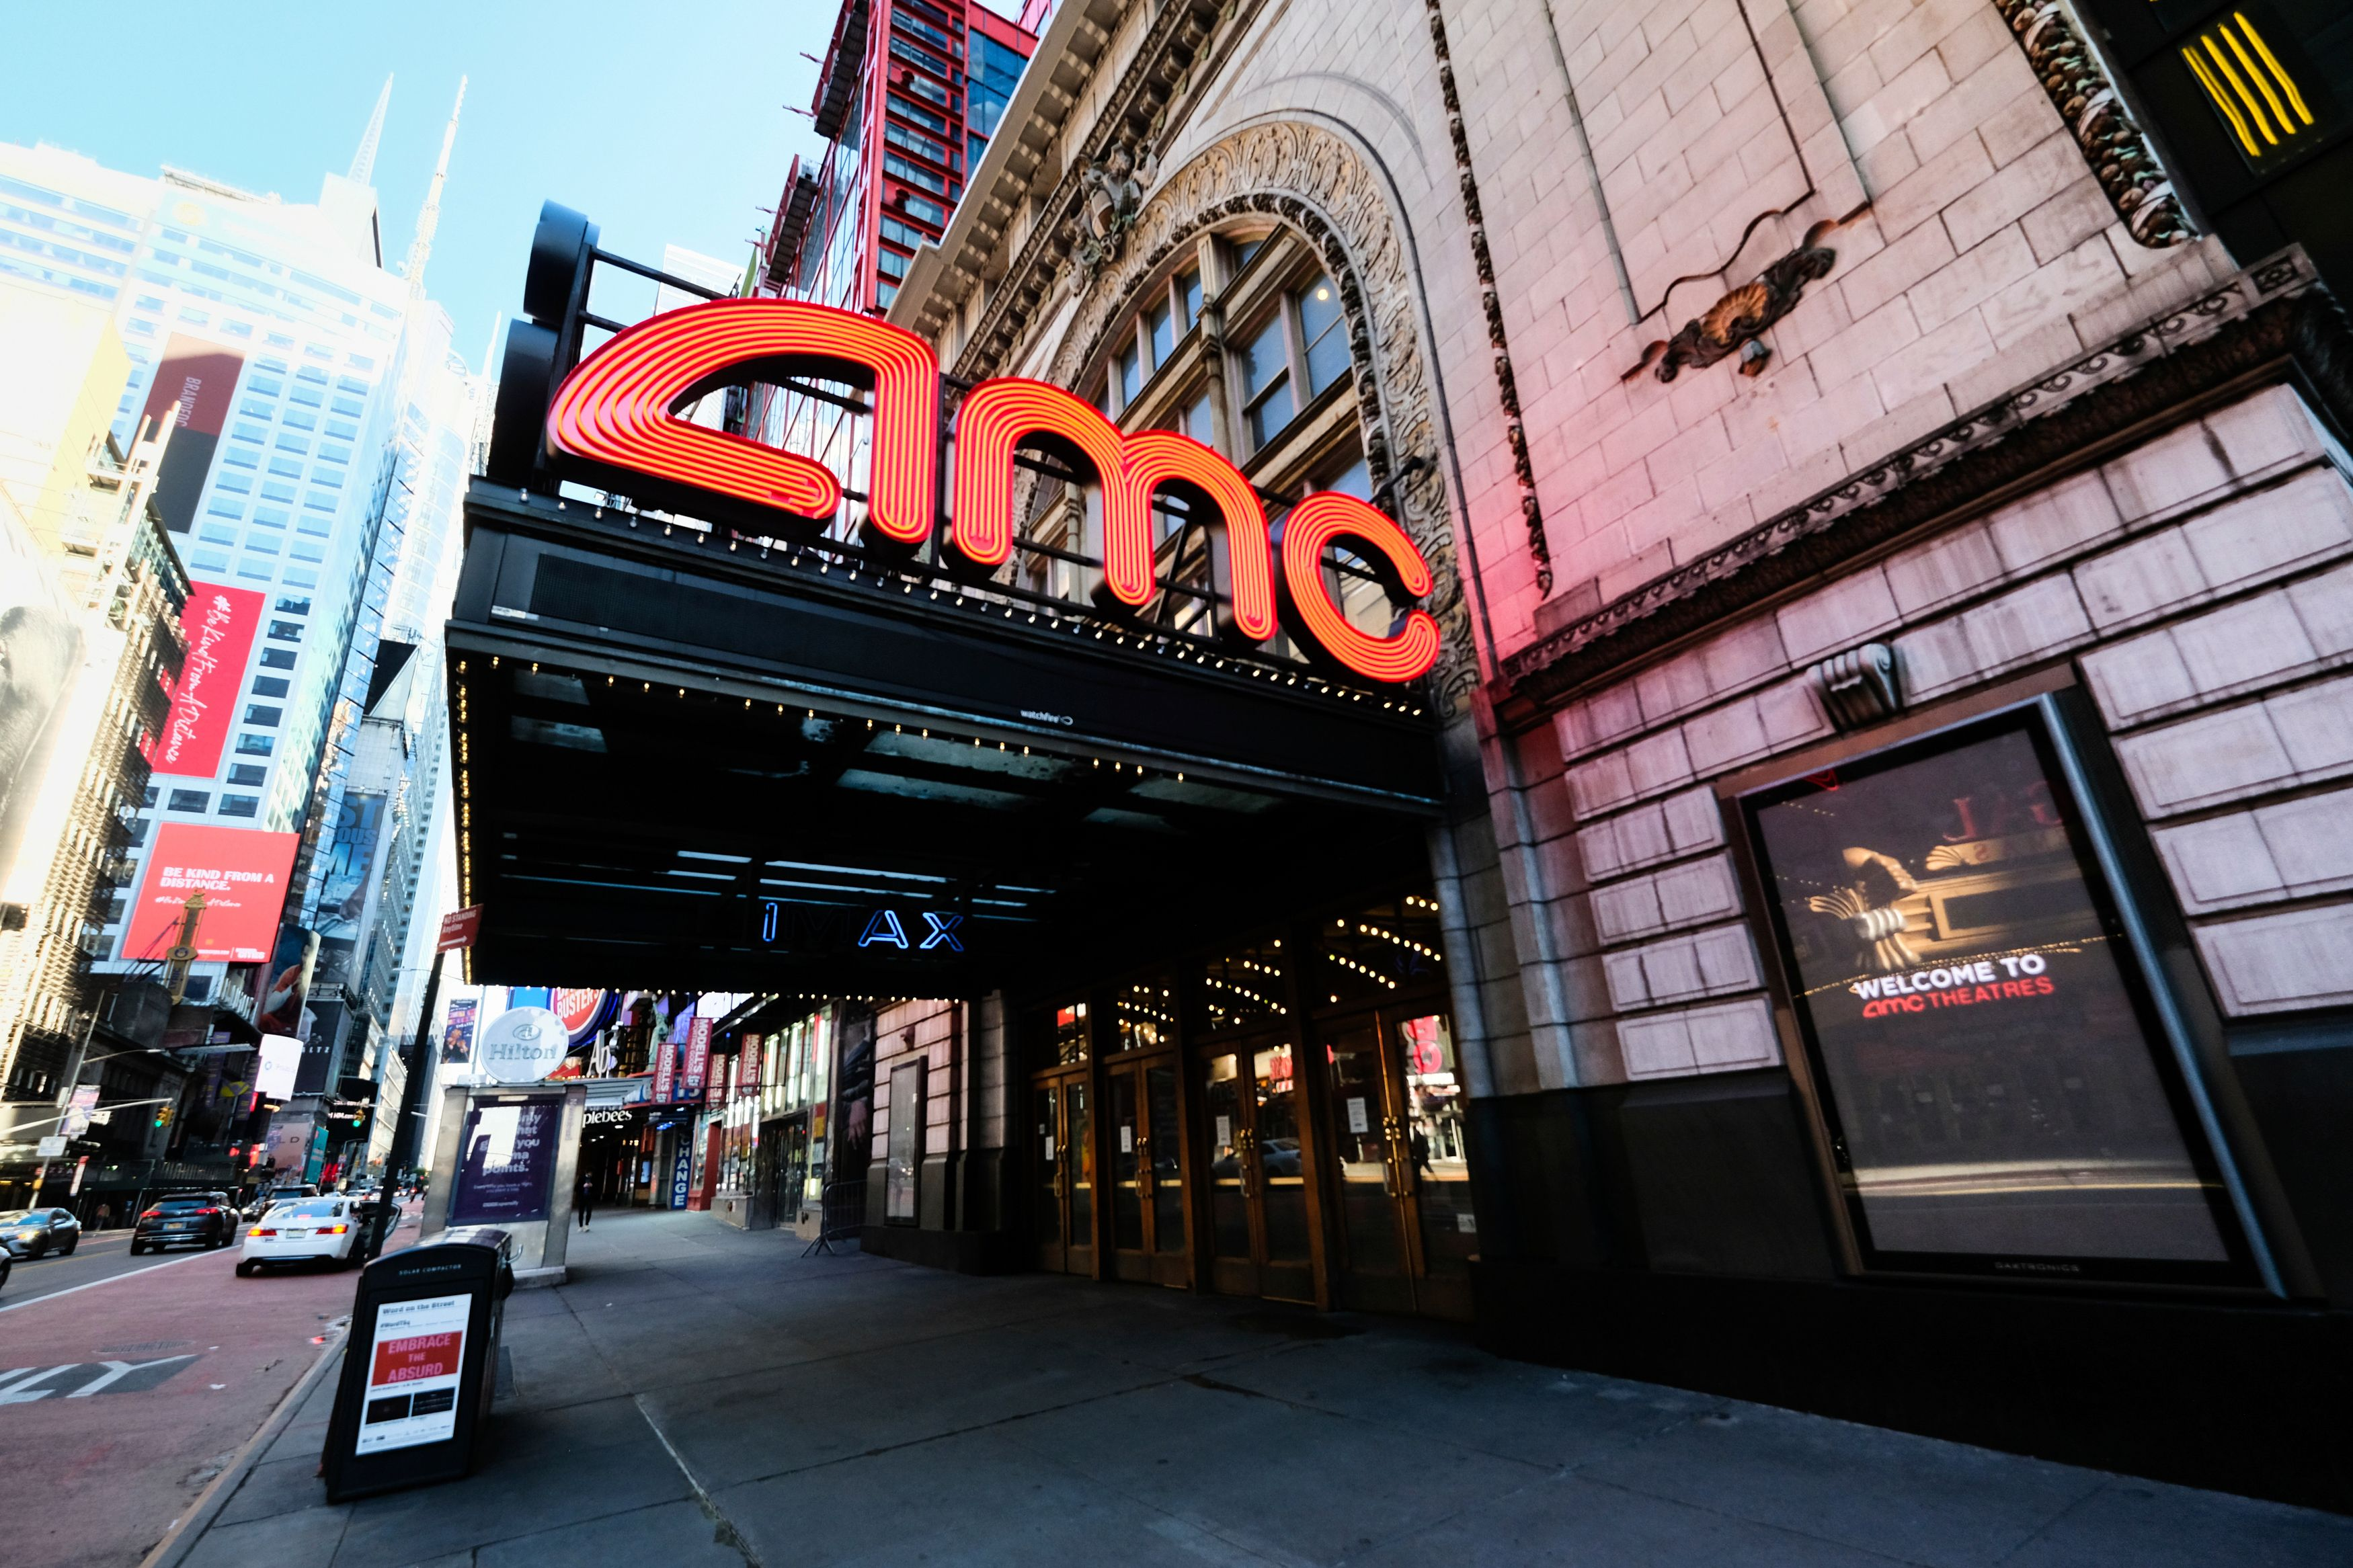 Media Stocks Lead Market Surge On Stimulus, Reopening, Streaming; AMC Entertainment, Discovery, Live Nation Pop